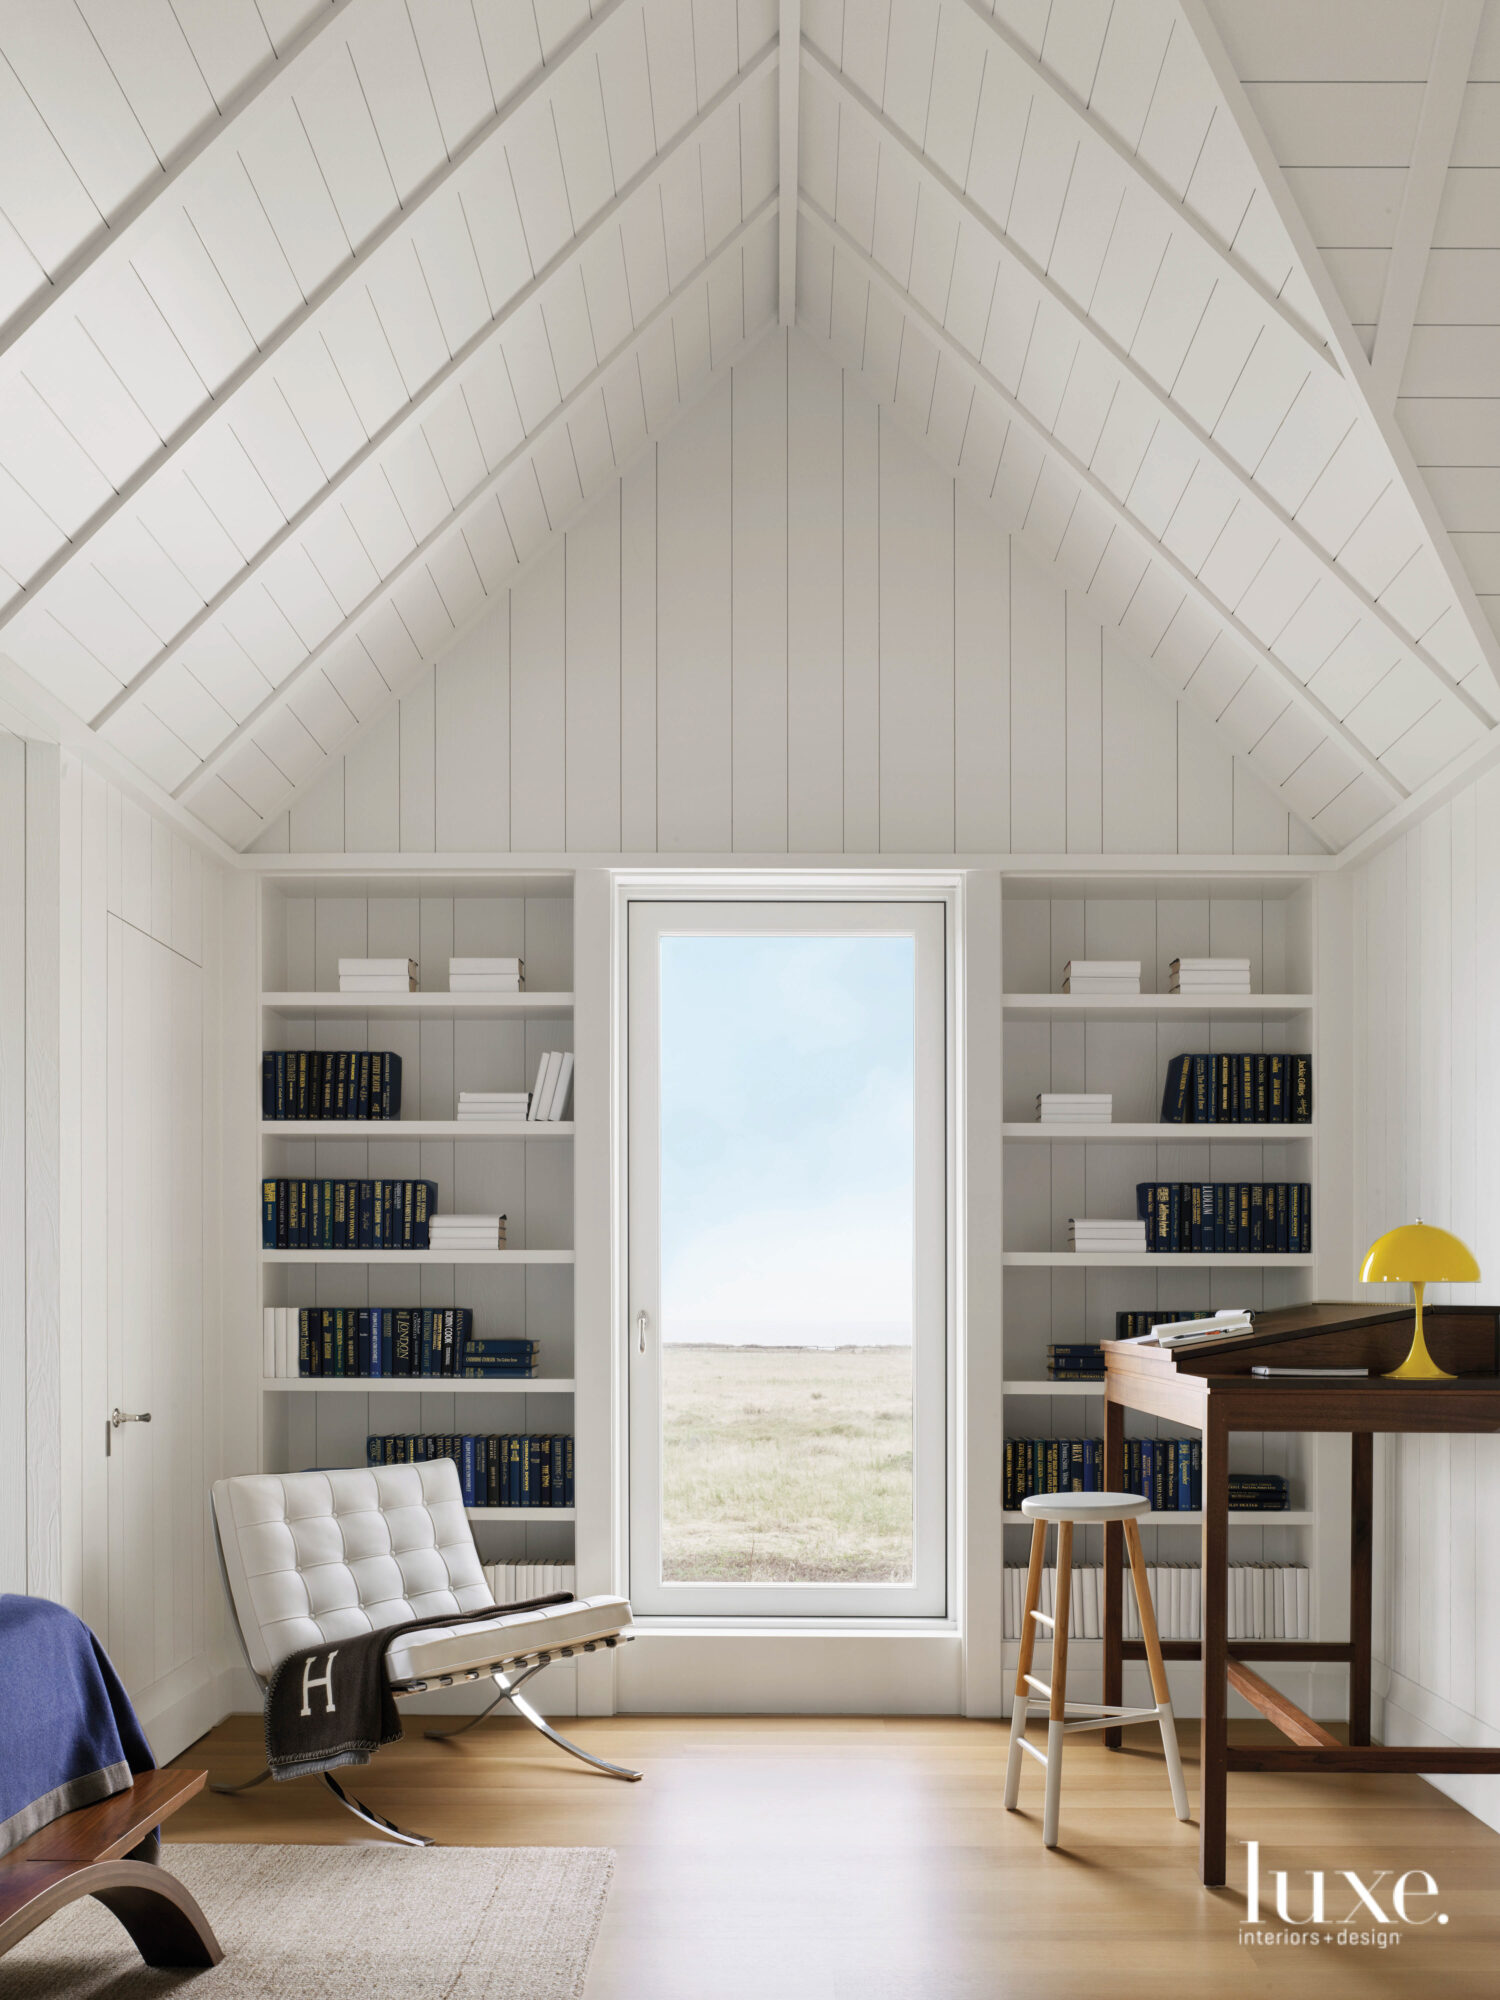 One end of the boy's room has a petite desk, white shelves and an ocean view.